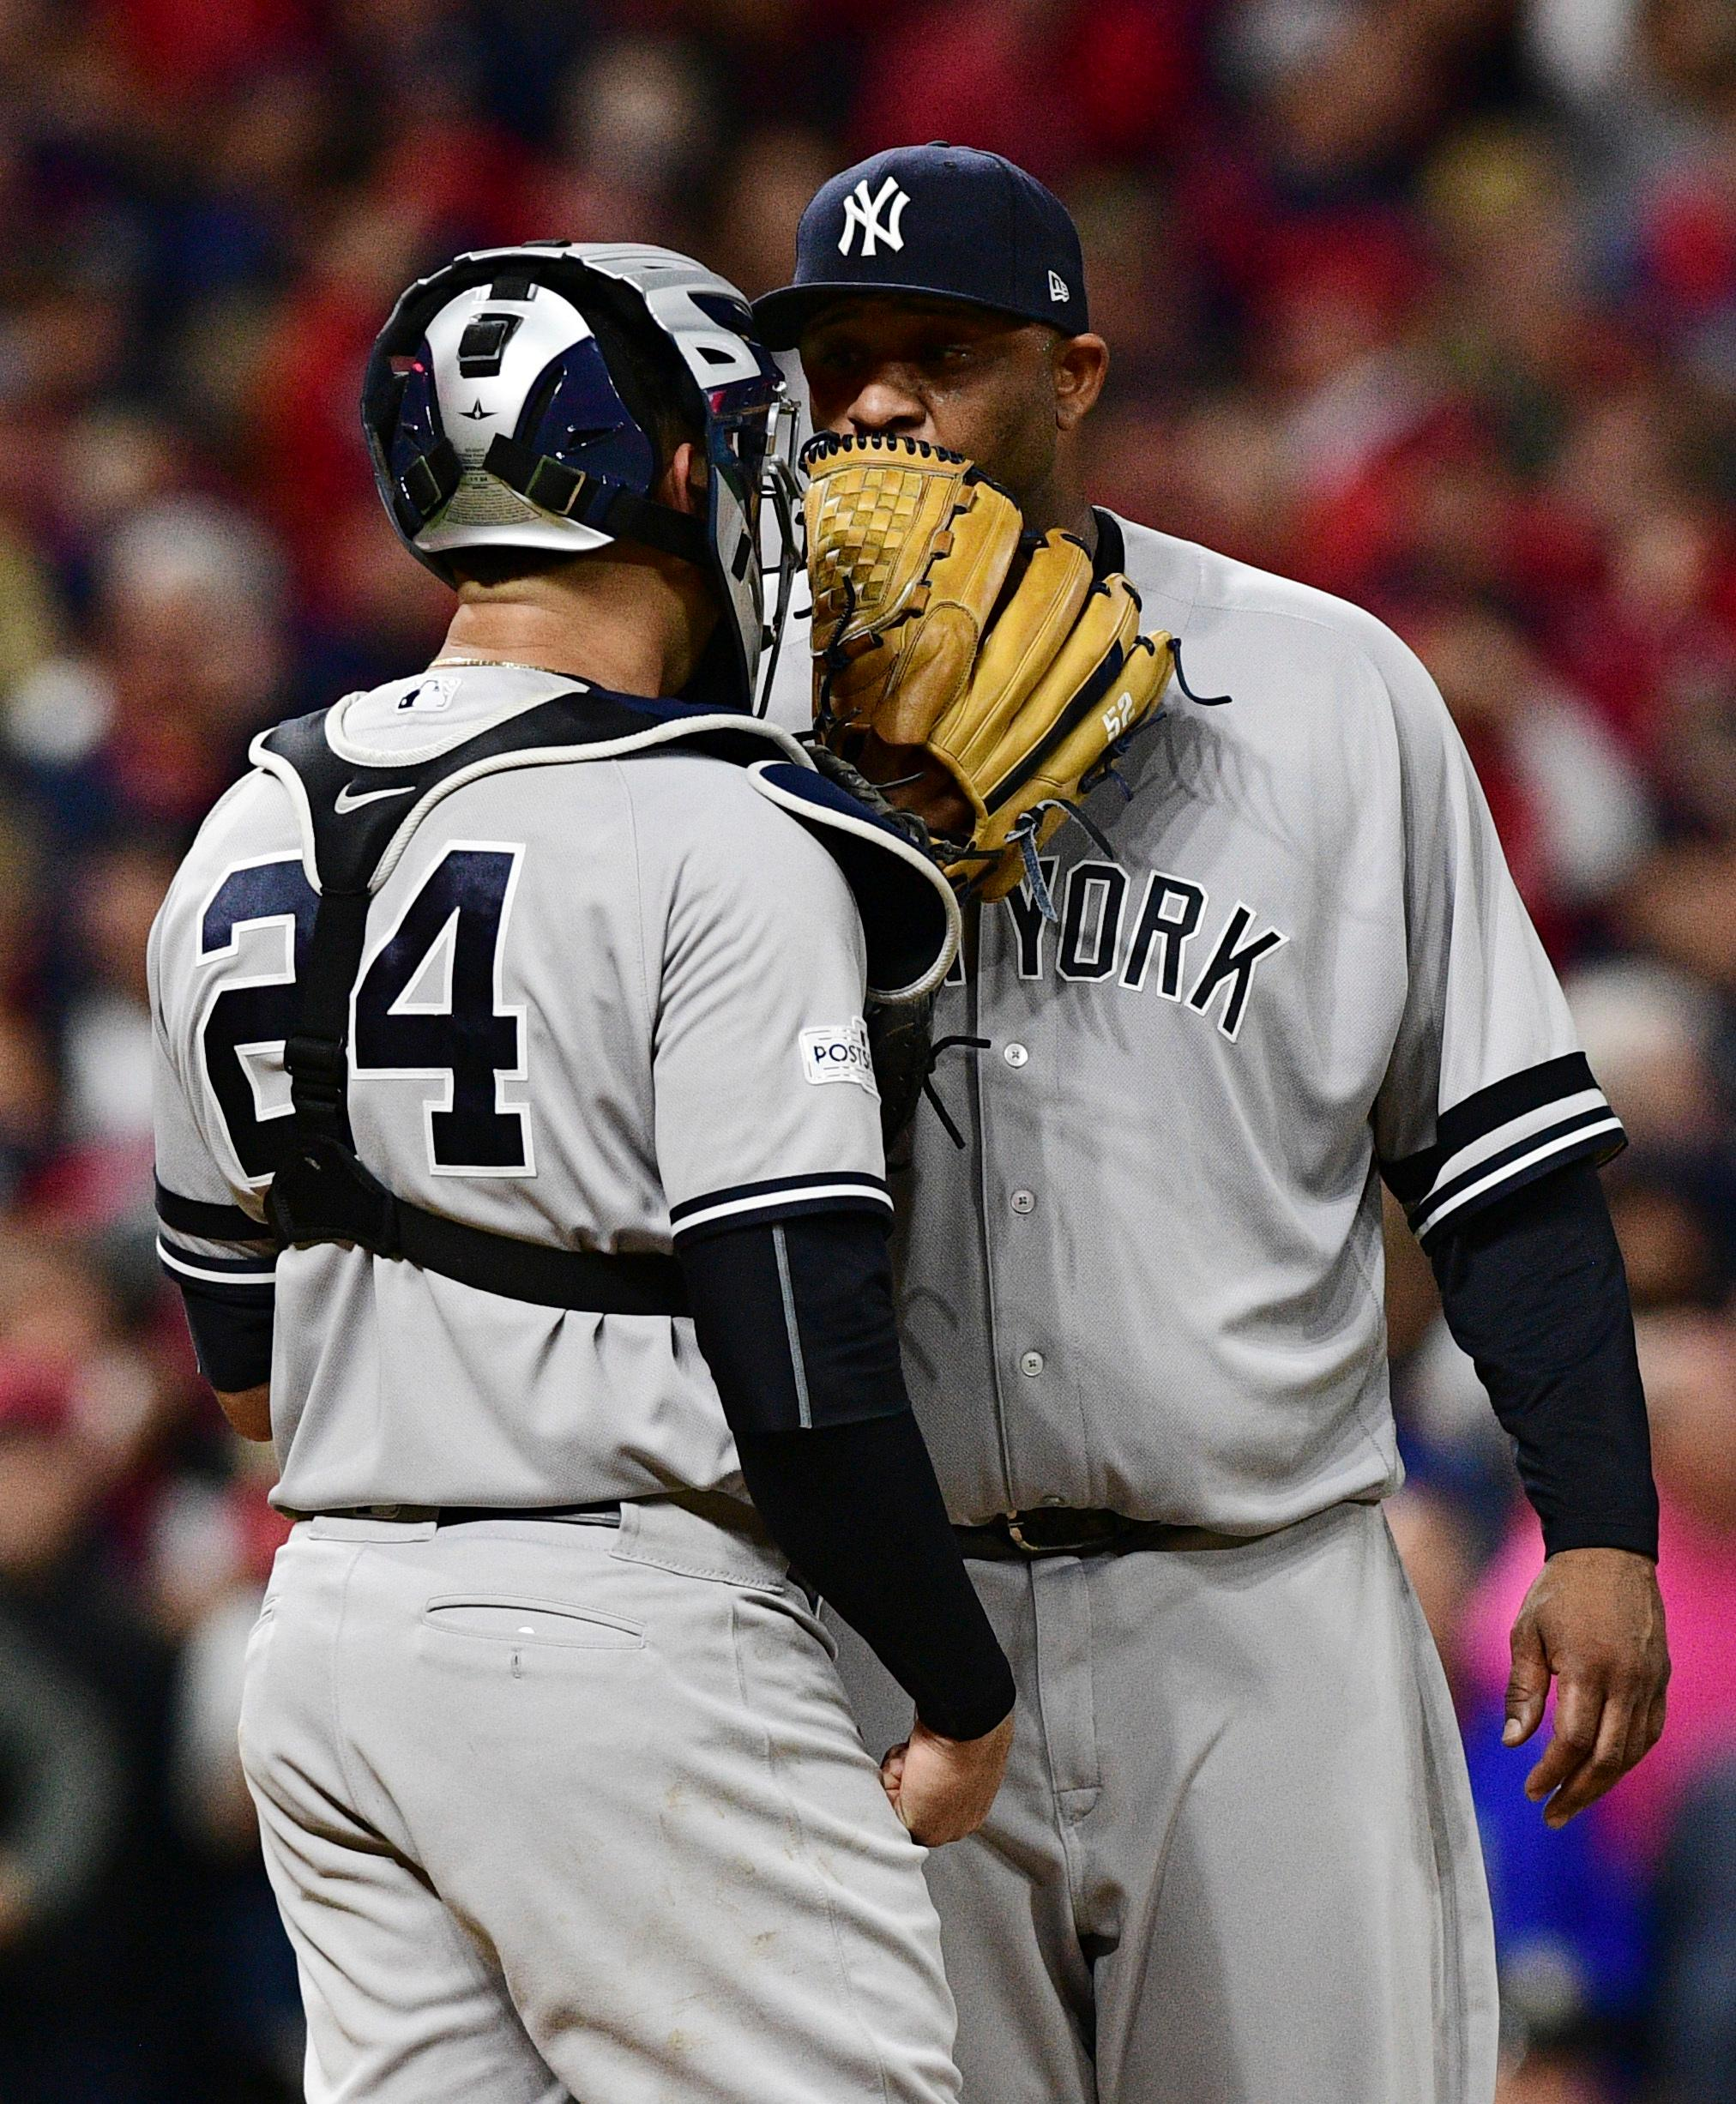 New York Yankees starting pitcher CC Sabathia, right, talks with catcher Gary Sanchez during the fifth inning of Game 5 of the team's baseball American League Division Series against the Cleveland Indians, Wednesday, Oct. 11, 2017, in Cleveland. (AP Photo/David Dermer)